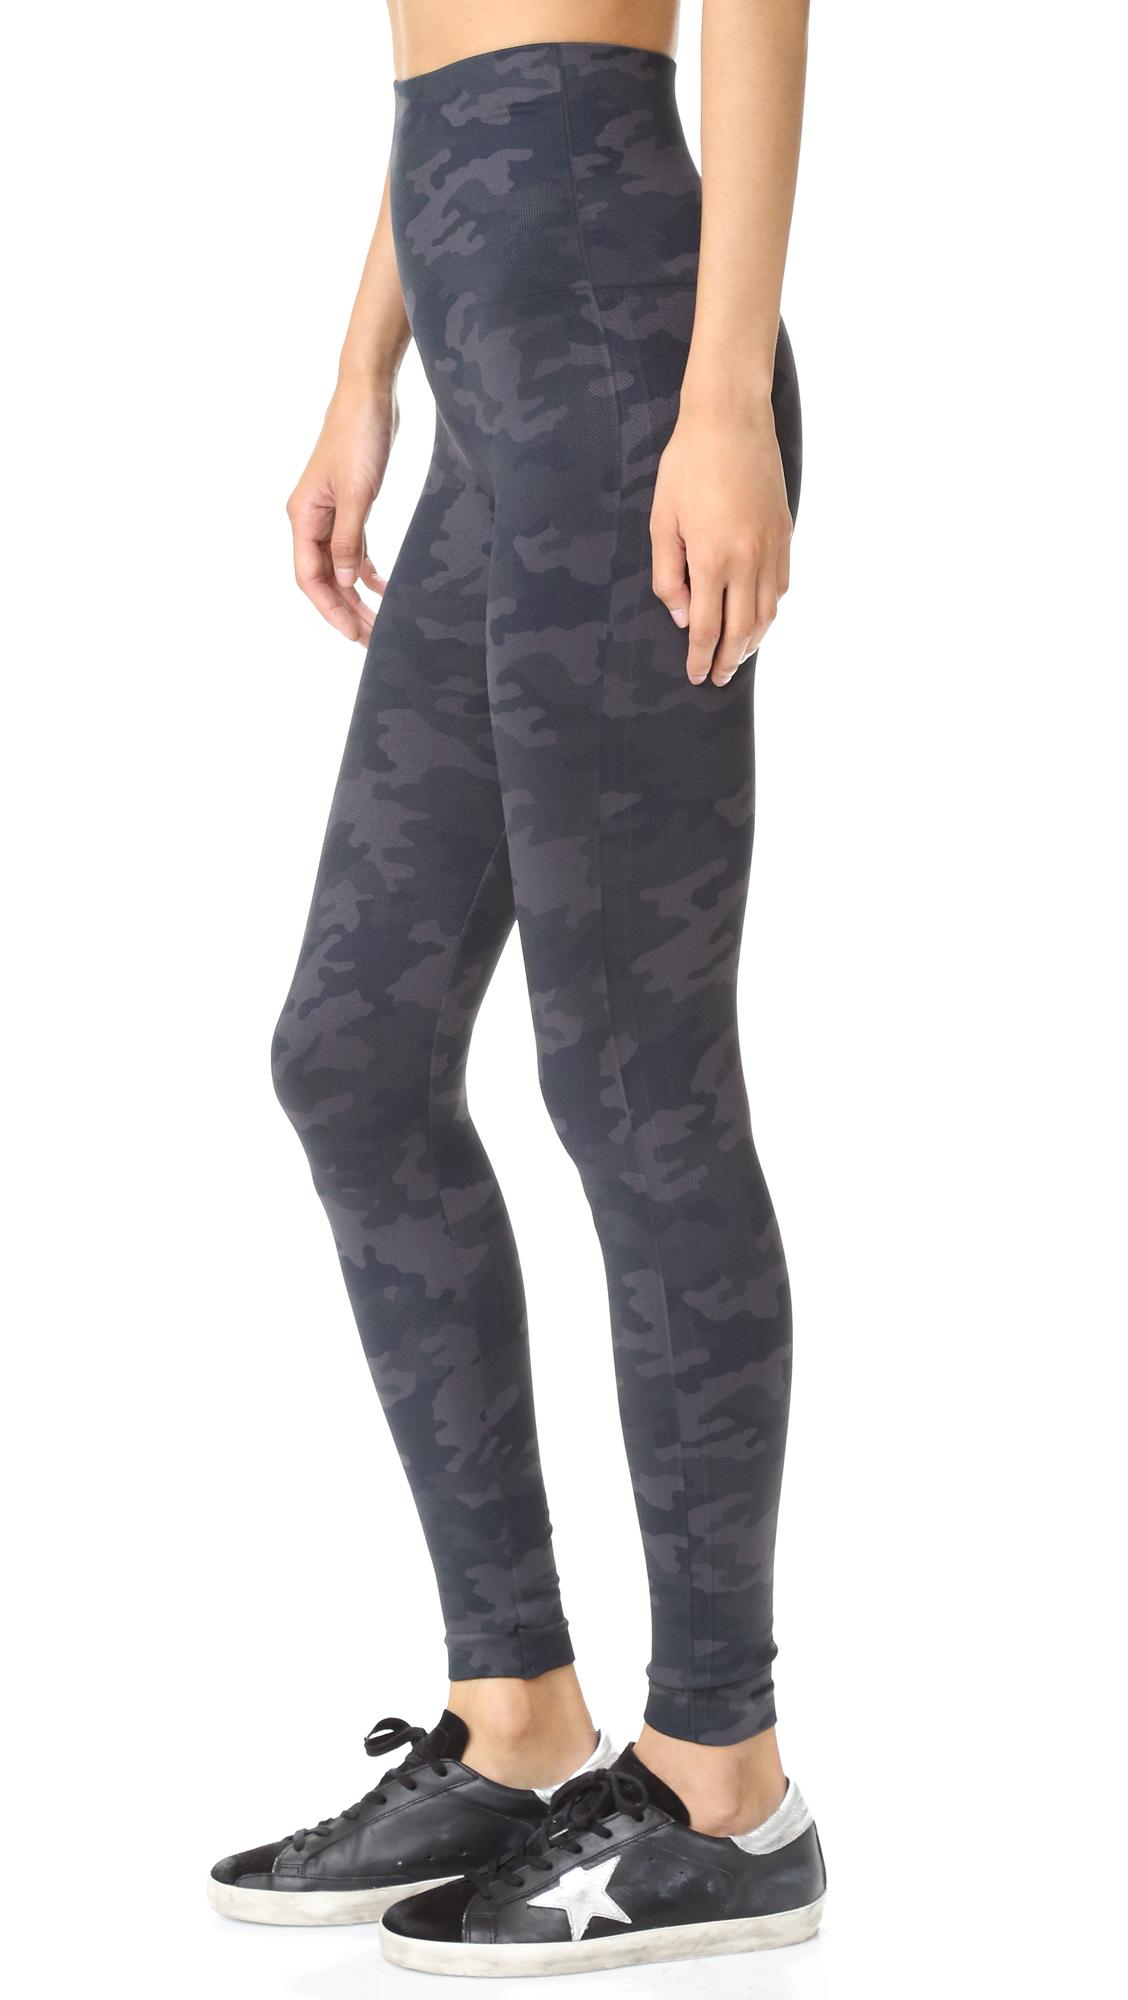 Spanx Seamless Camo Leggings in Black